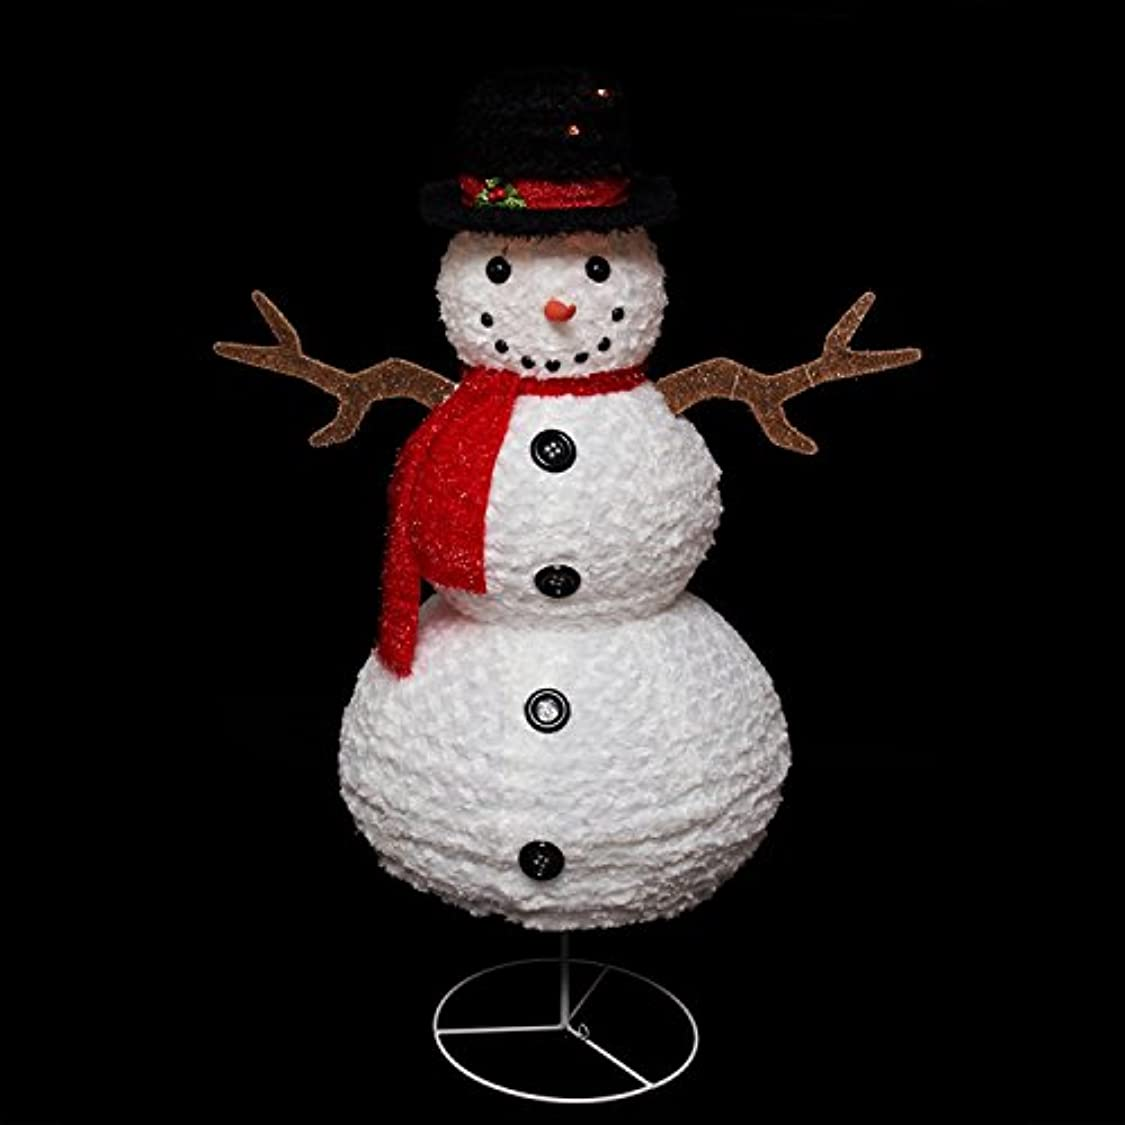 Northlight Seasonal Pre-Lit Outdoor Chenille Swirl Snowman w/Top Hat Christmas Yard Art Decoration, 48 bv28878327492791